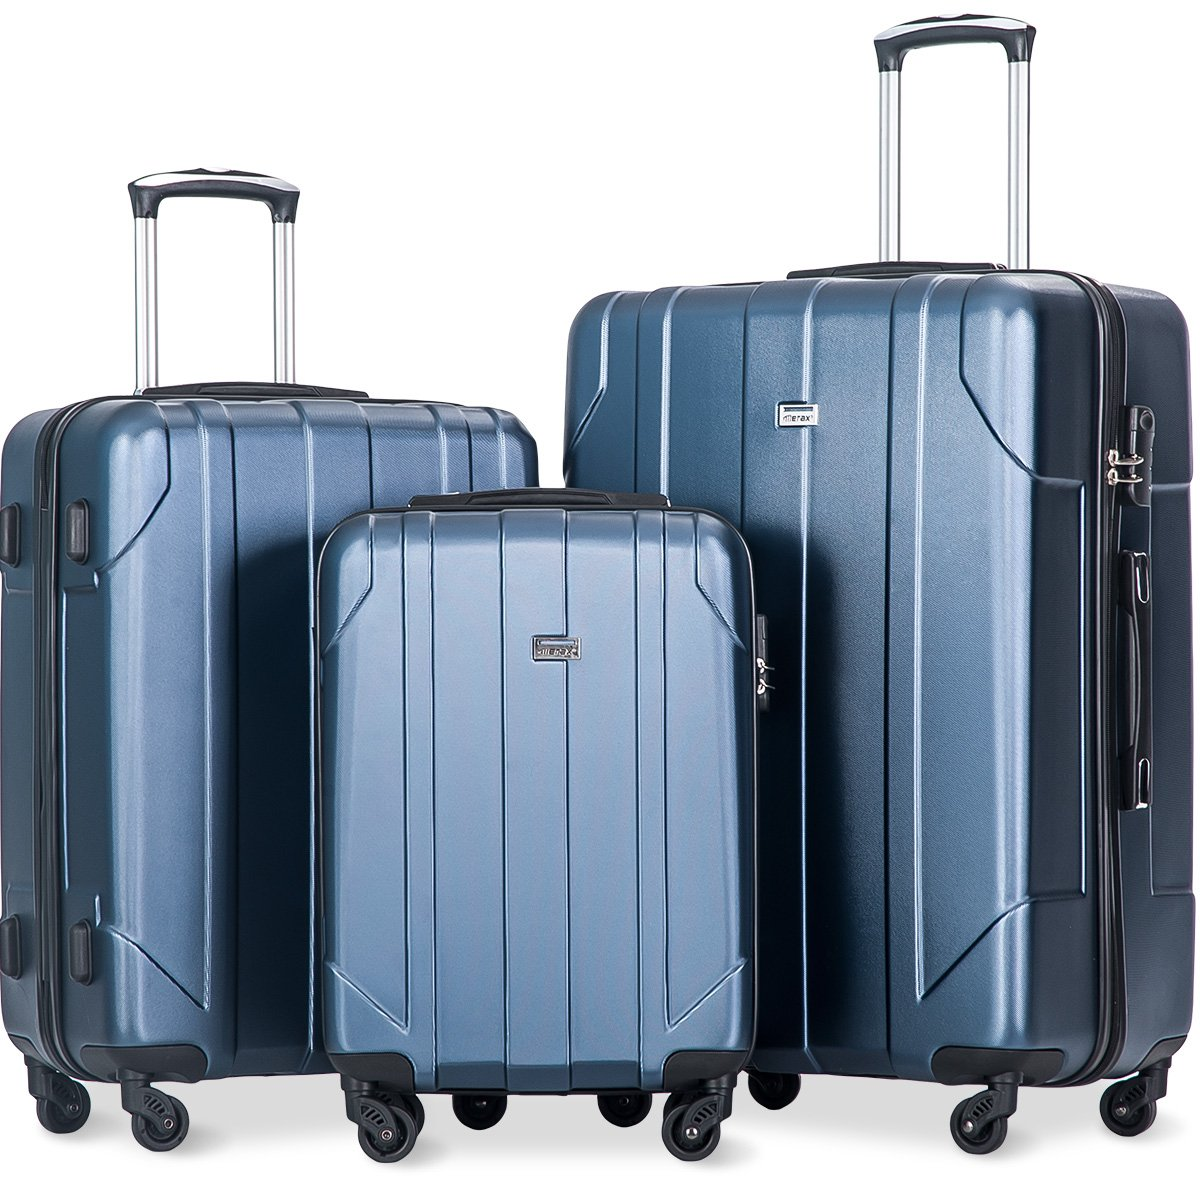 936d23aef30b Merax 3 Piece PET Luggage Set Eco-friendly Light Weight Spinner  Suitcase(Blue)